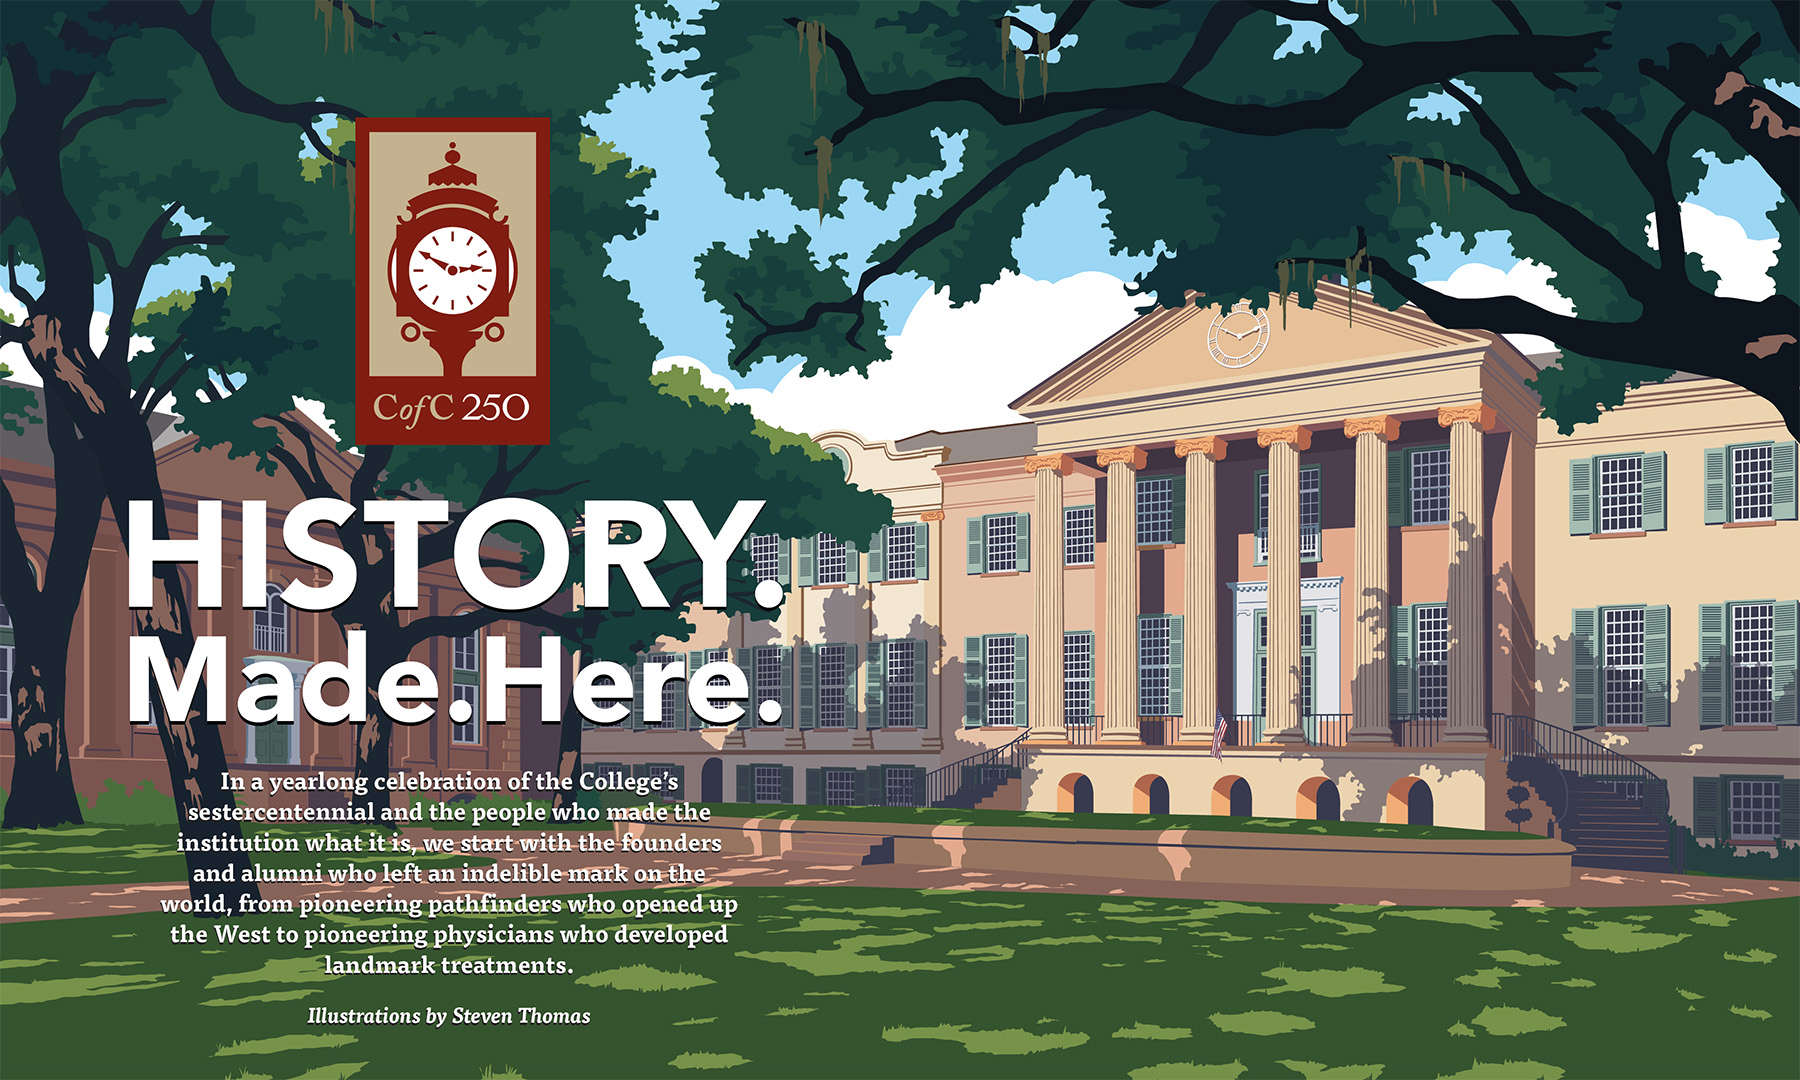 History Made Here with Randolph Hall illustration